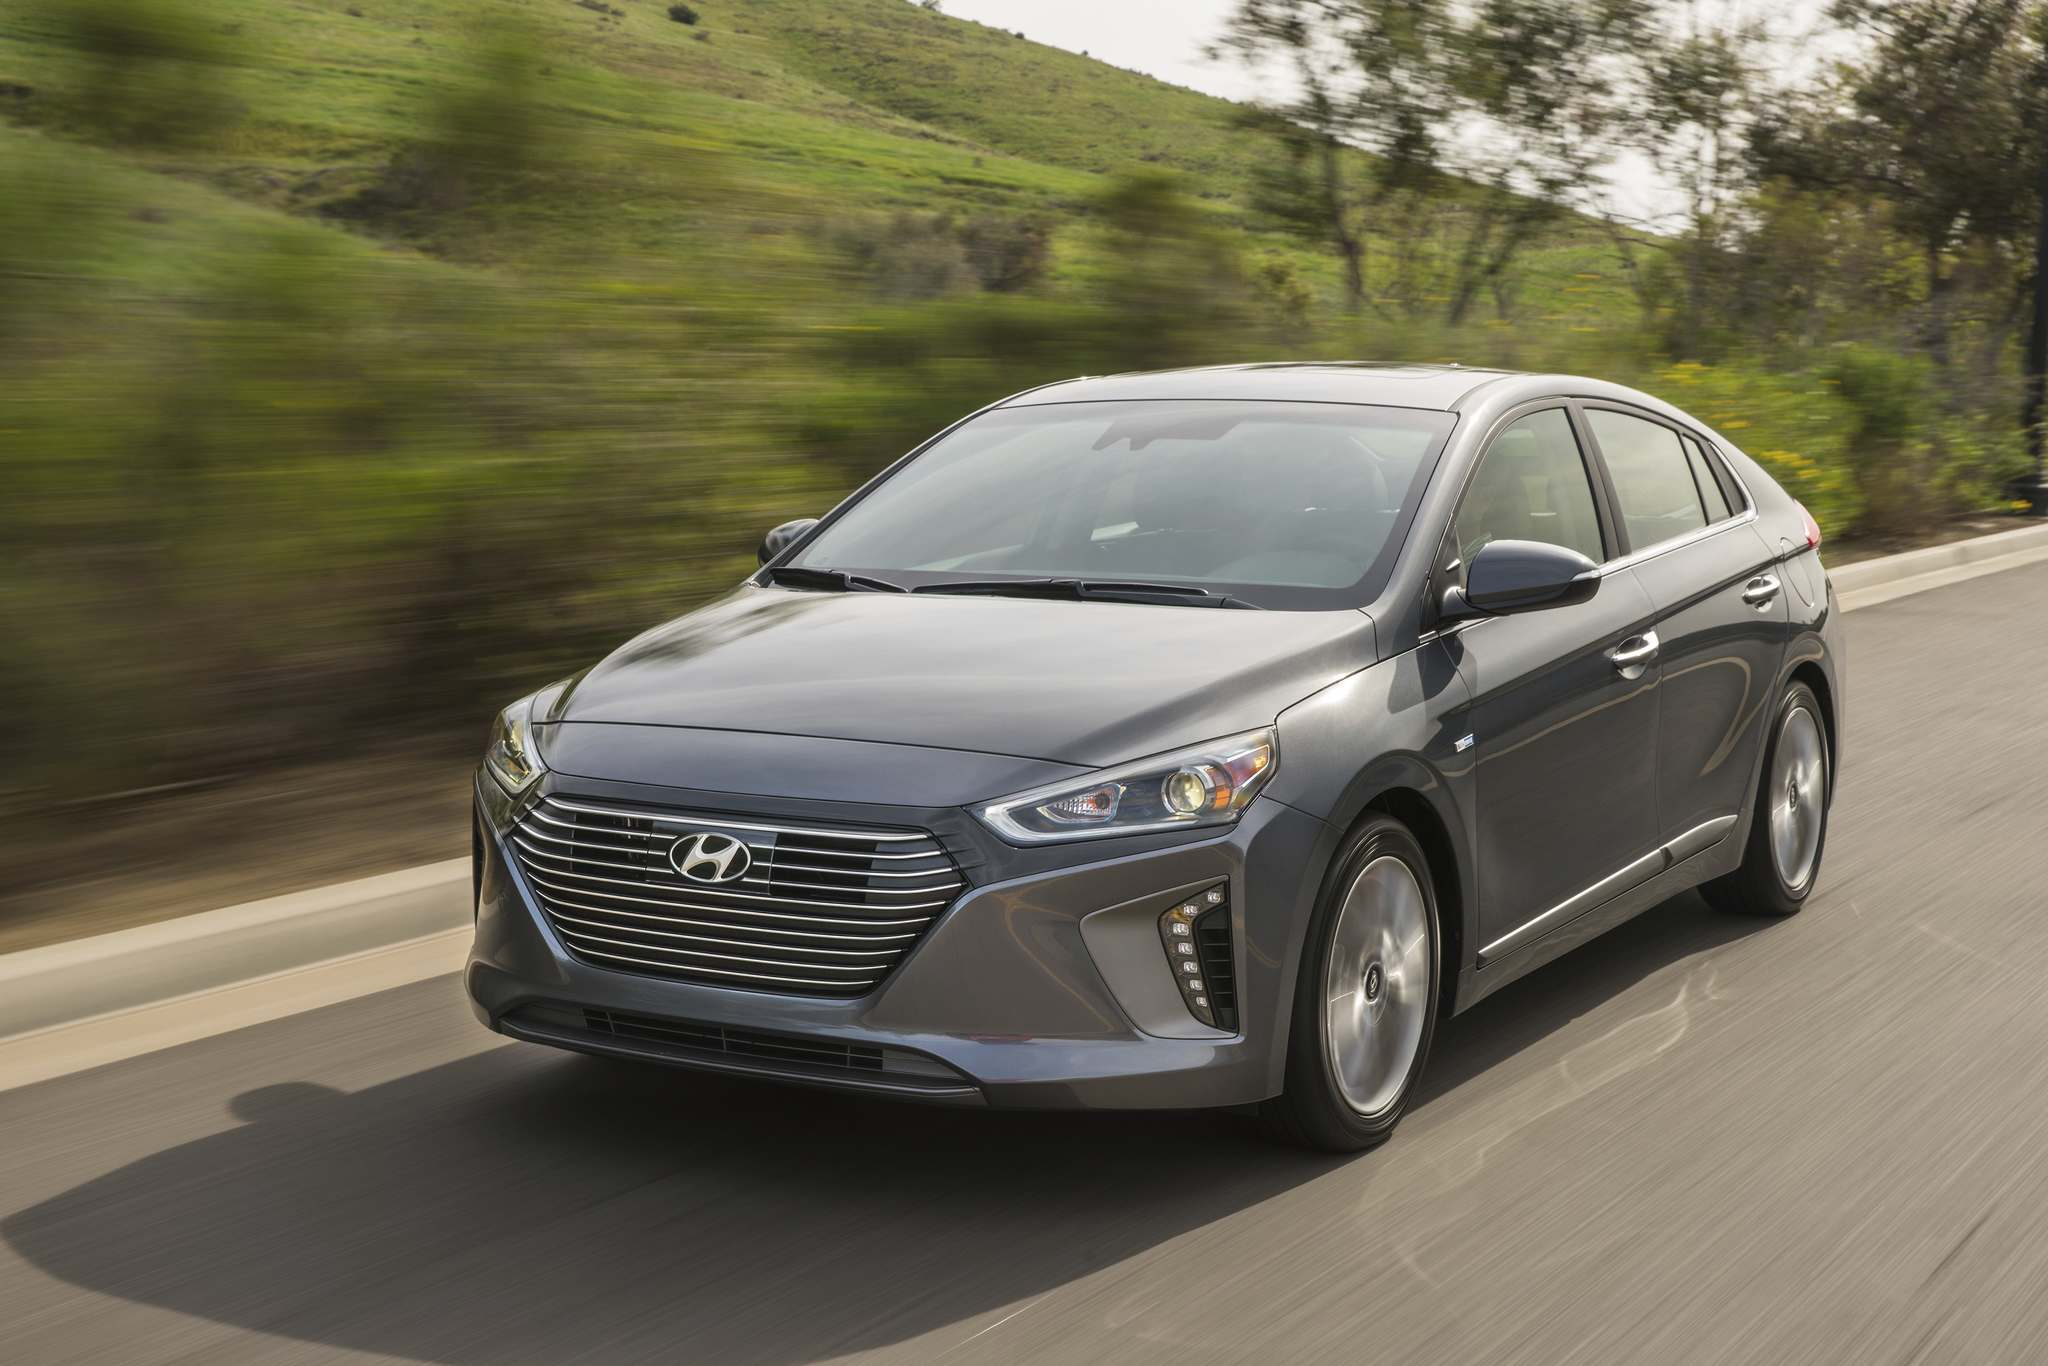 The Ioniq starts at $24,299 and comes fairly well-equipped at the base price. (Hyundai)